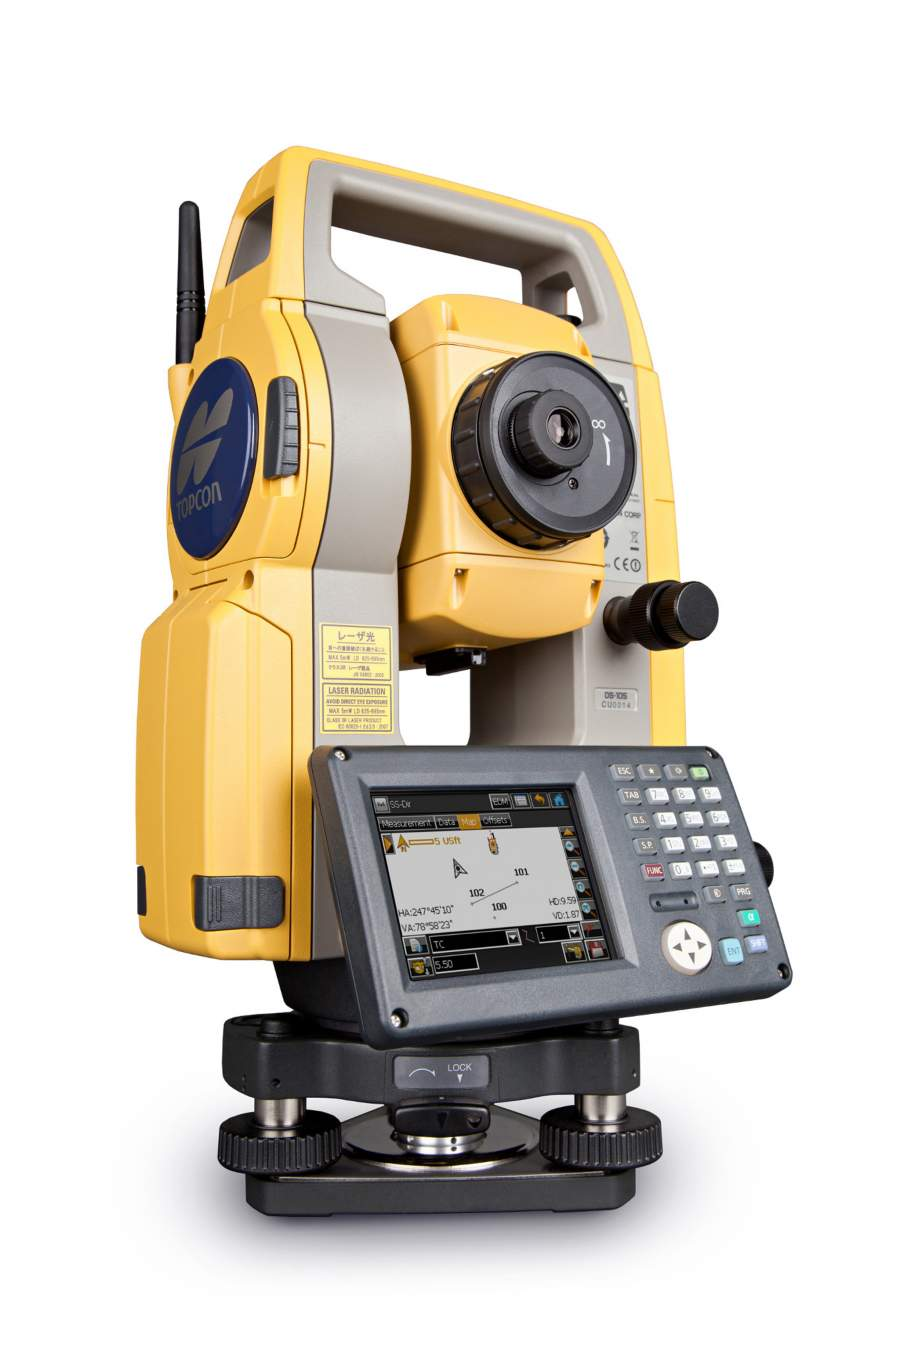 The Topcon OS Series Total Station is equipped with multiple class-leading features, including a powerful reflectorless EDM, large LCD touchscreen and smart on-board software.